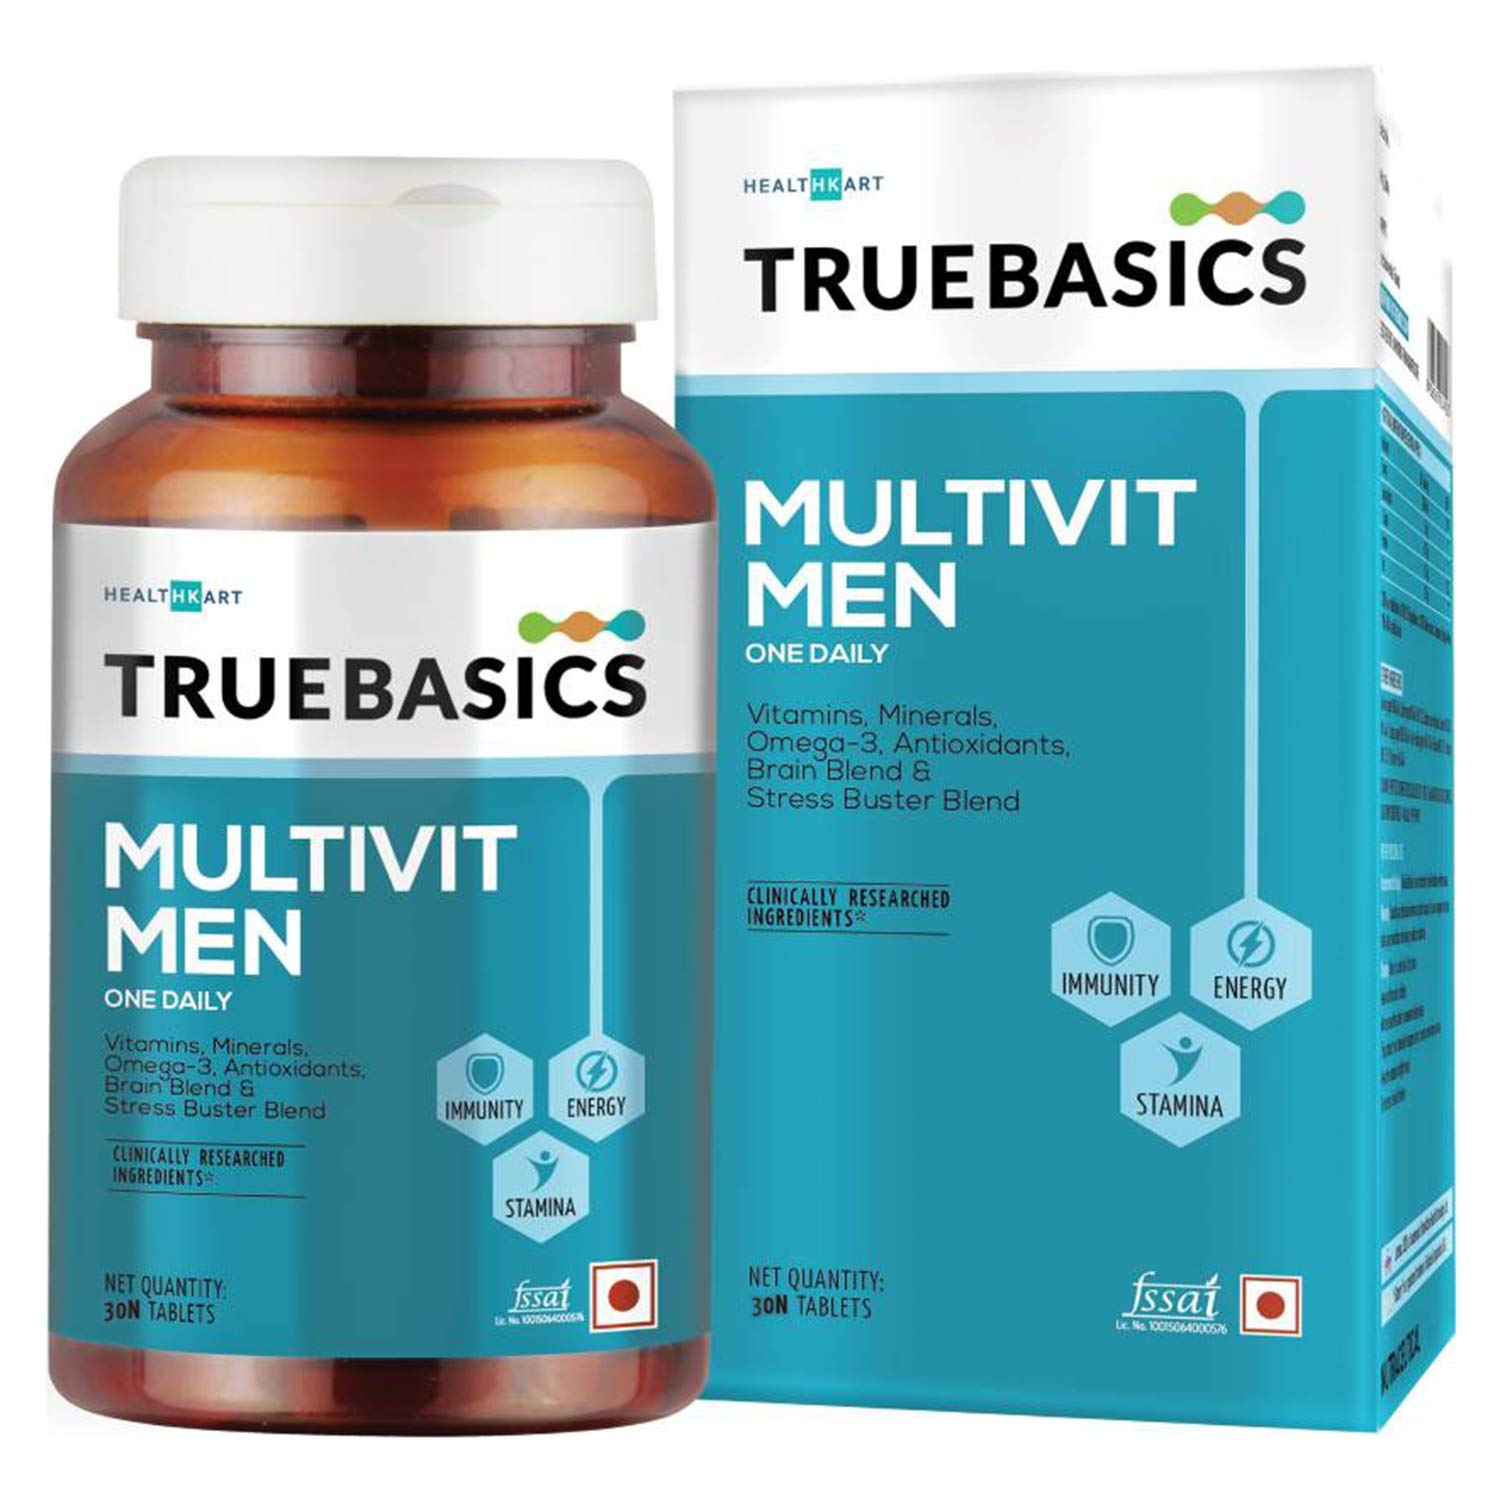 TrueBasics Multivit Men One Daily, Multivitamin for Men, Multiminerals, Omega 3, Nutrition Supplement for Energy, Immunity & Stamina (30 Tablets)